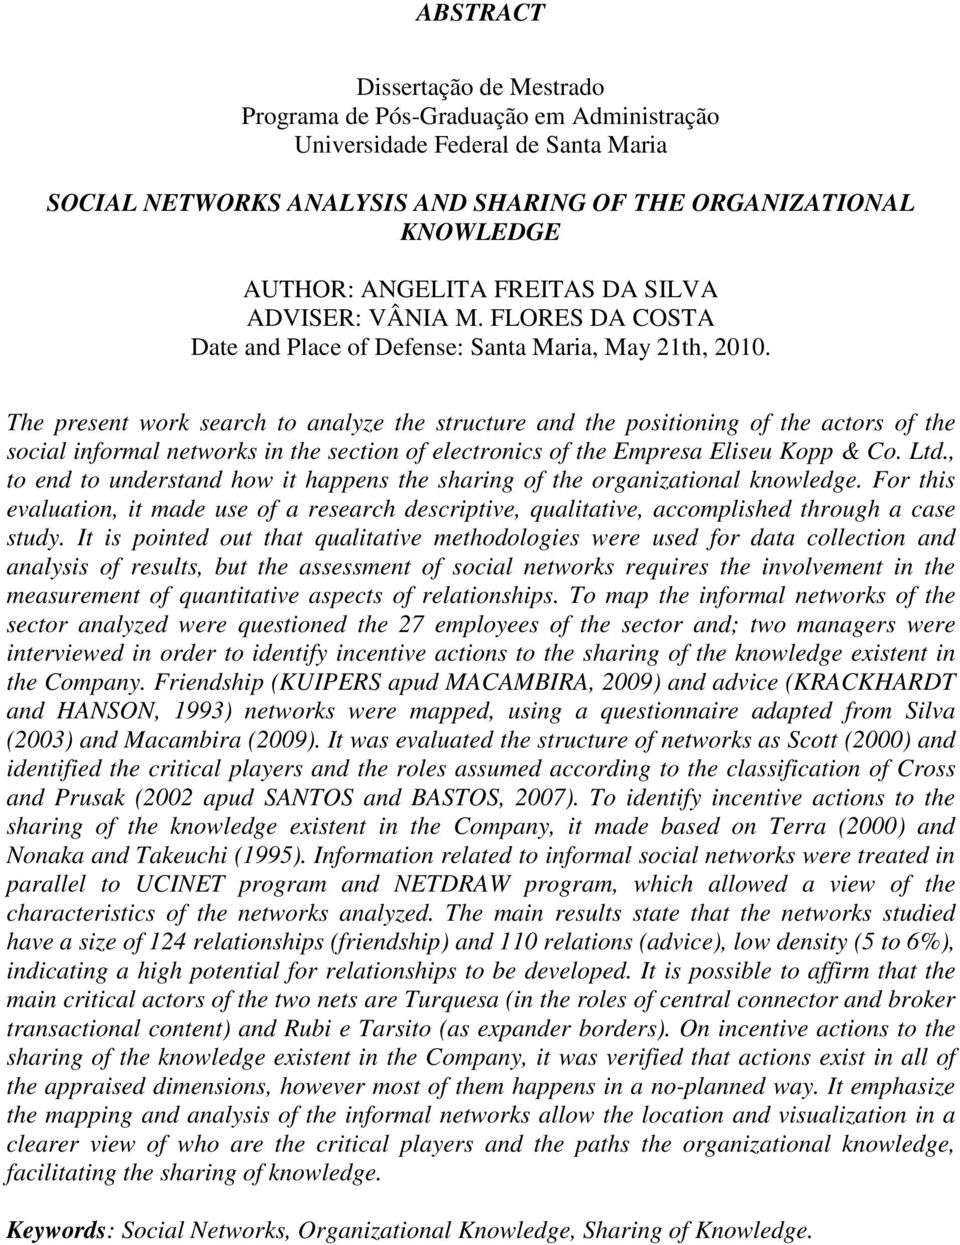 The present work search to analyze the structure and the positioning of the actors of the social informal networks in the section of electronics of the Empresa Eliseu Kopp & Co. Ltd.